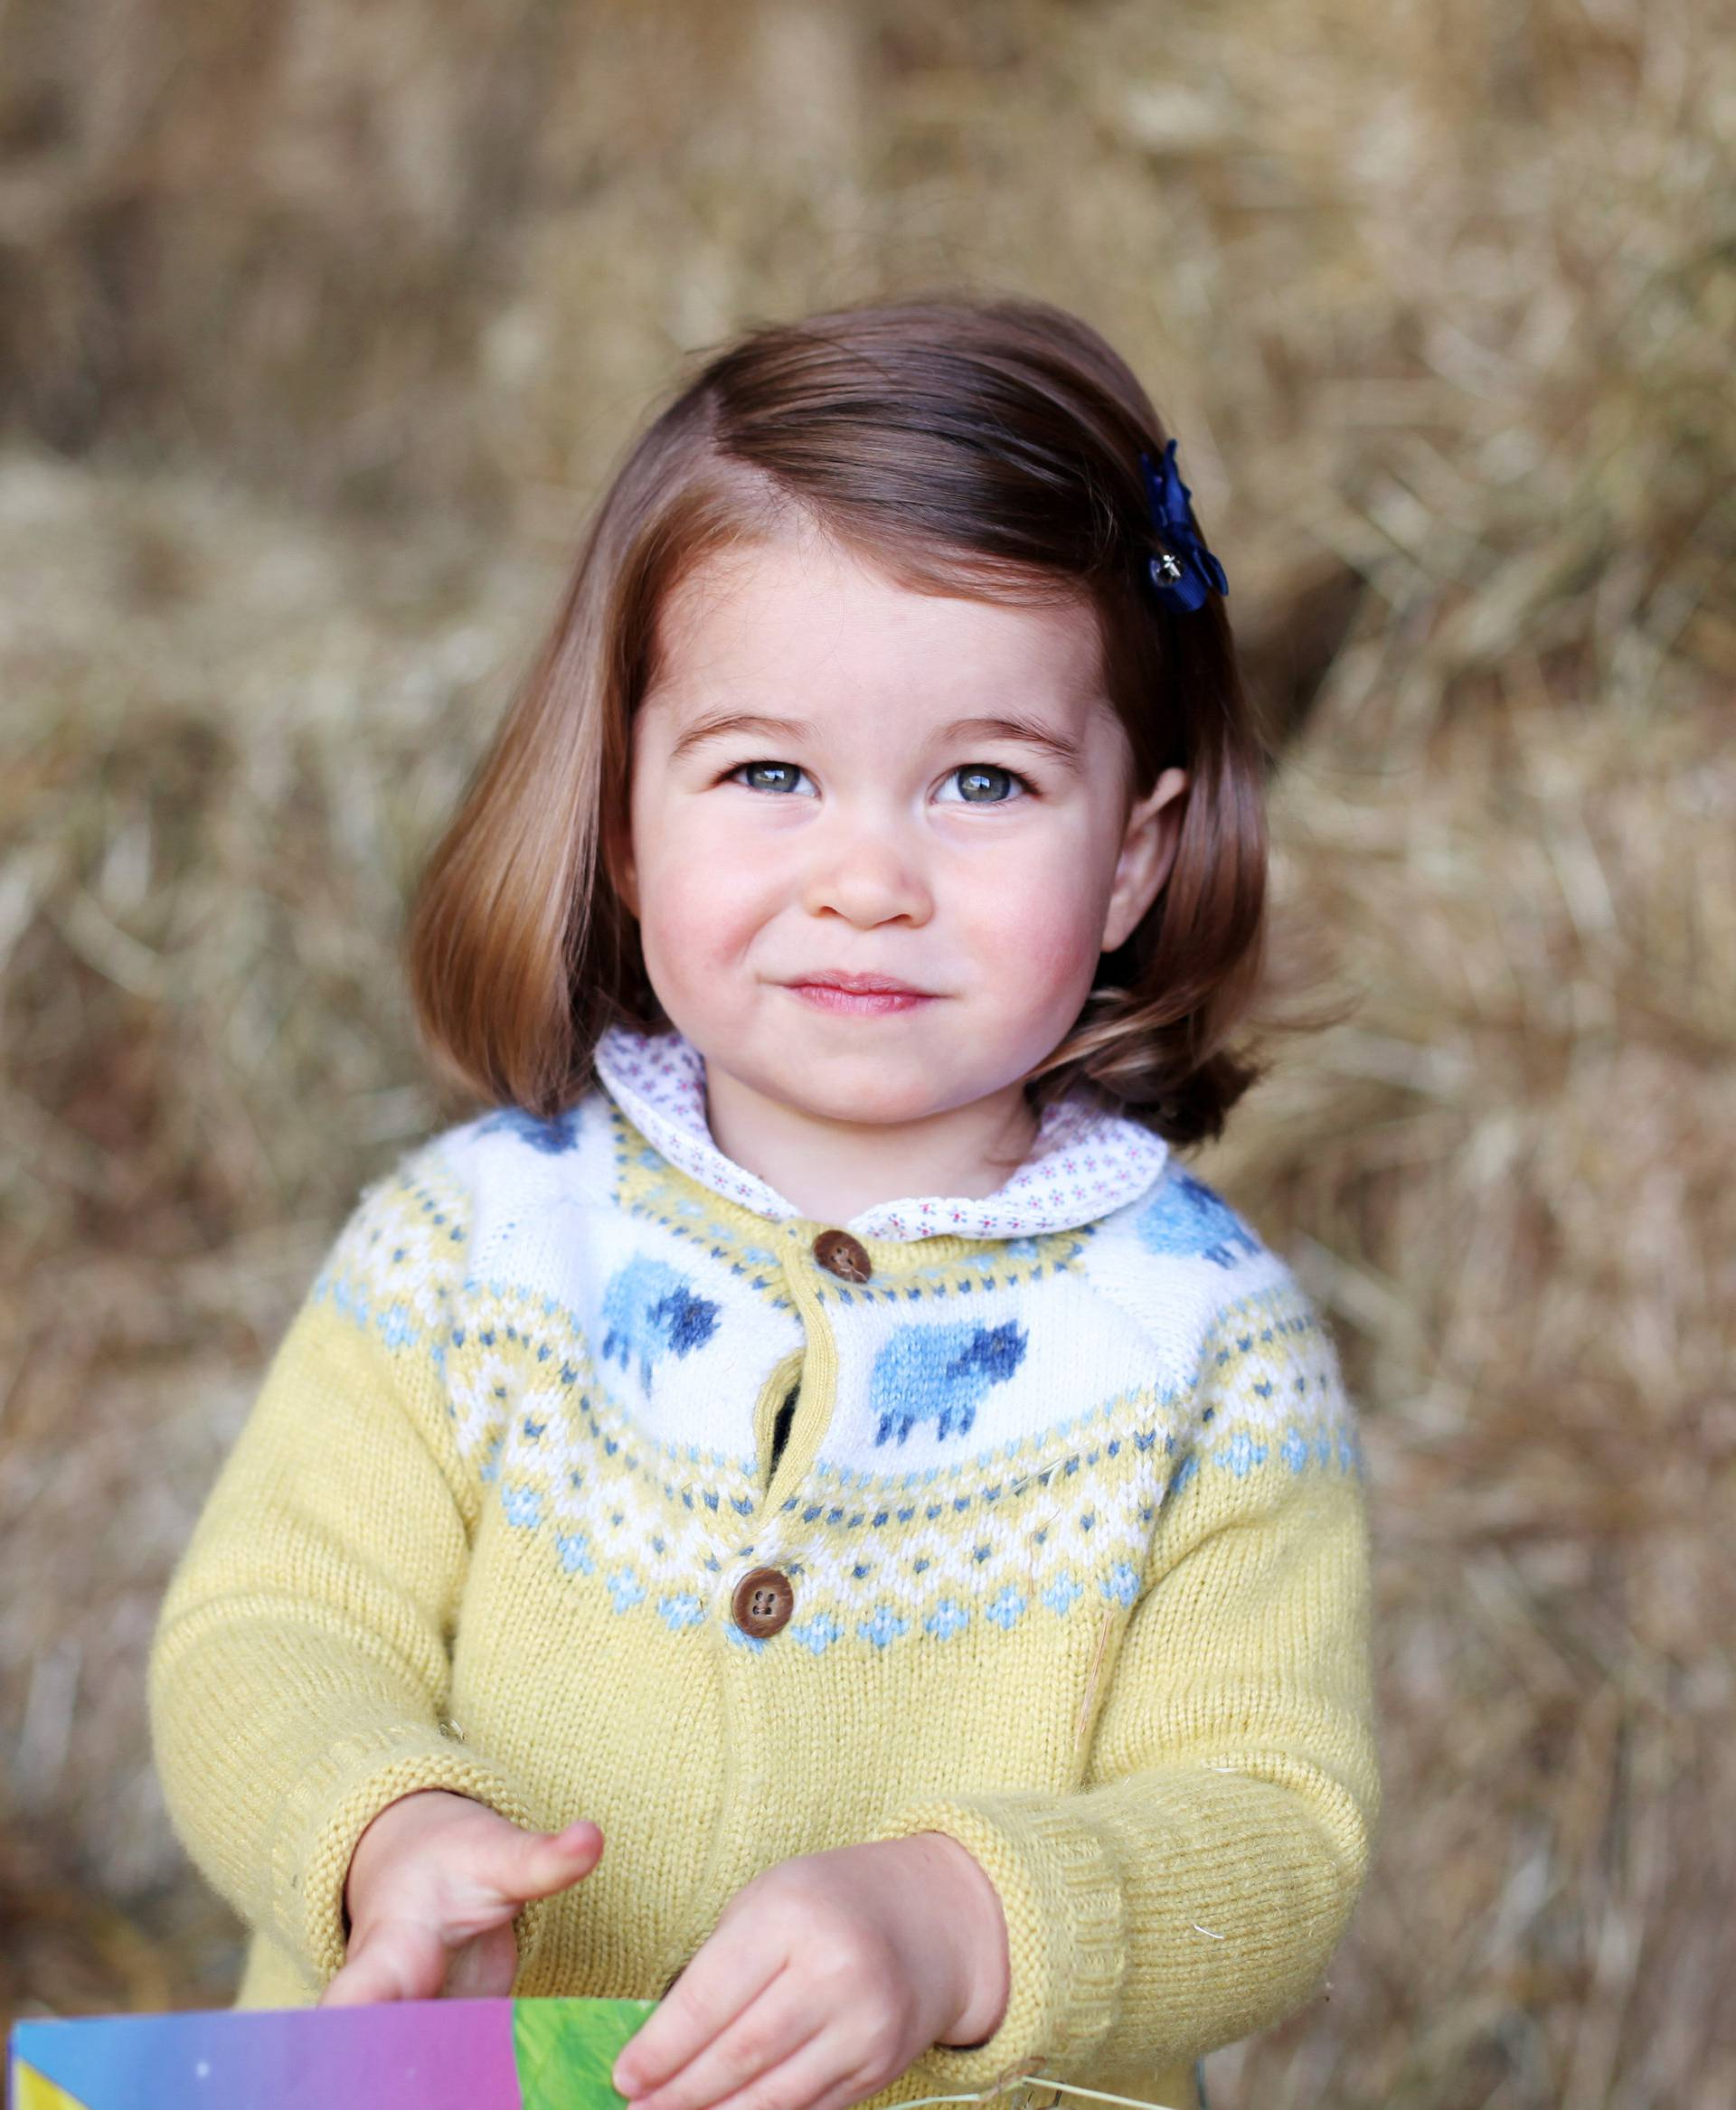 Britain's Princess Charlotte is seen in this undated handout photograph, taken at Anmer Hall in Norfolk, and released by Prince Willam and Catherine, Duchess of Cambridge